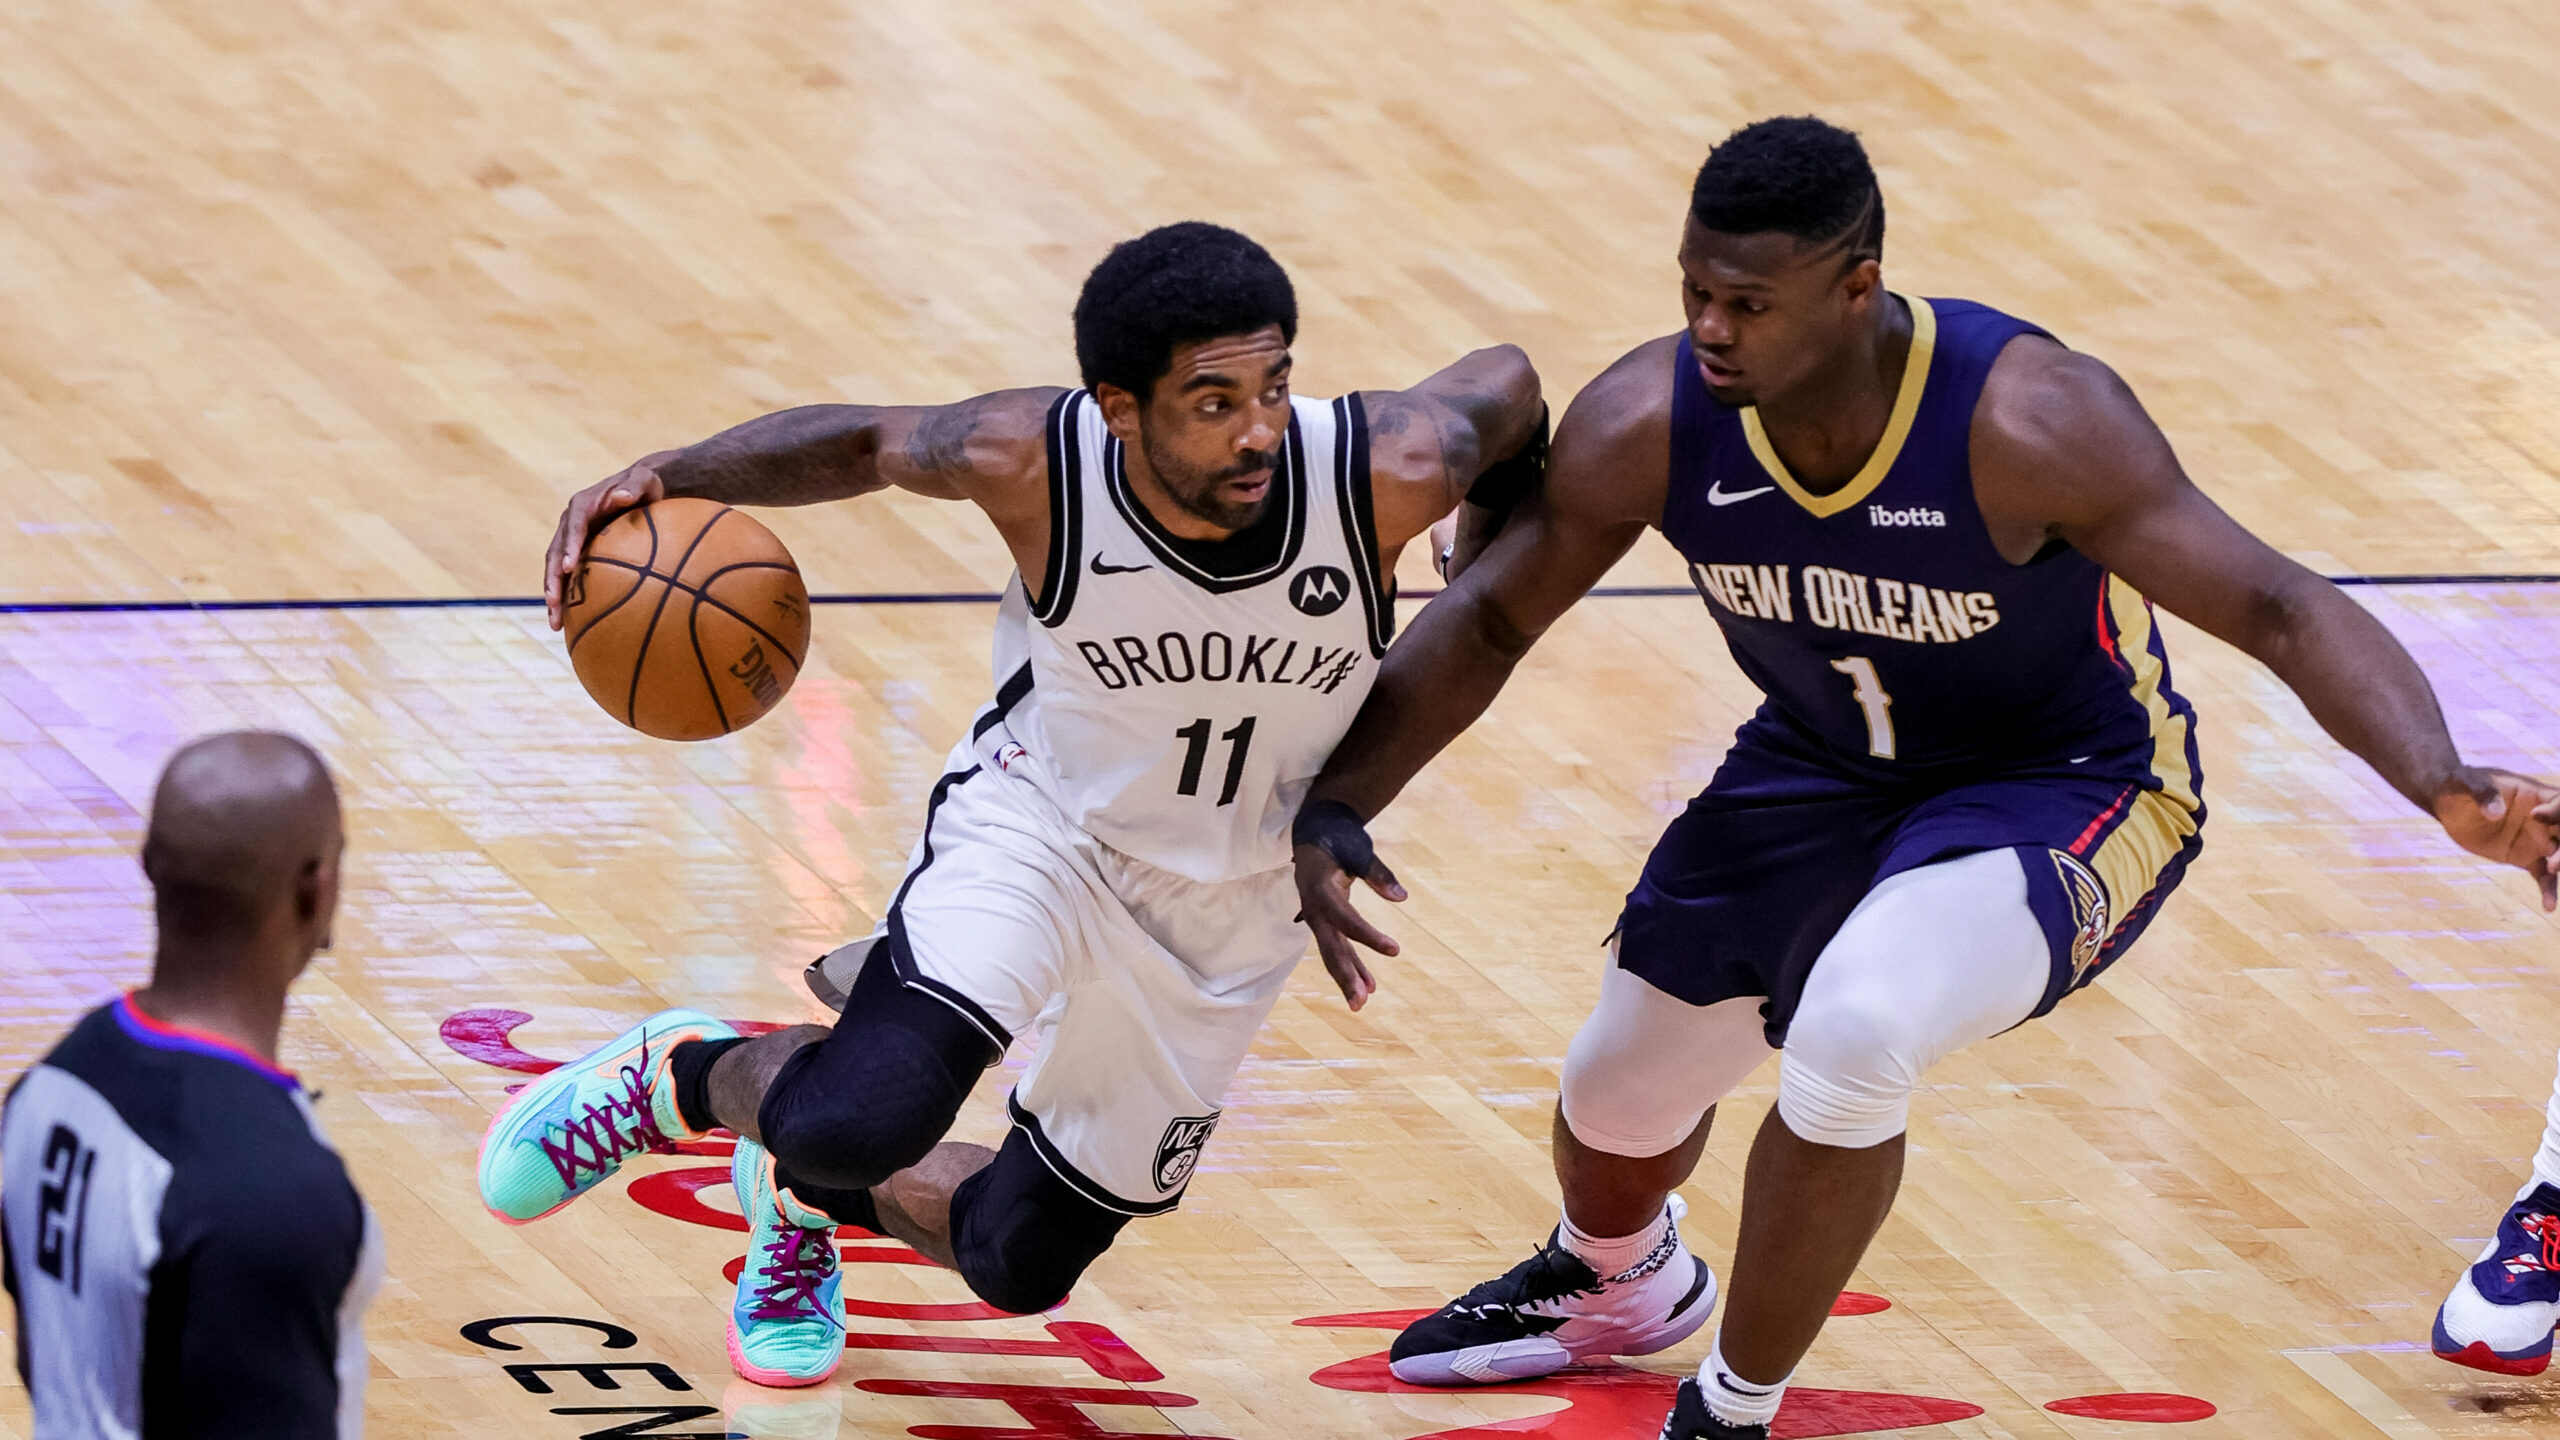 Irving leads Nets against Zion, Pelicans